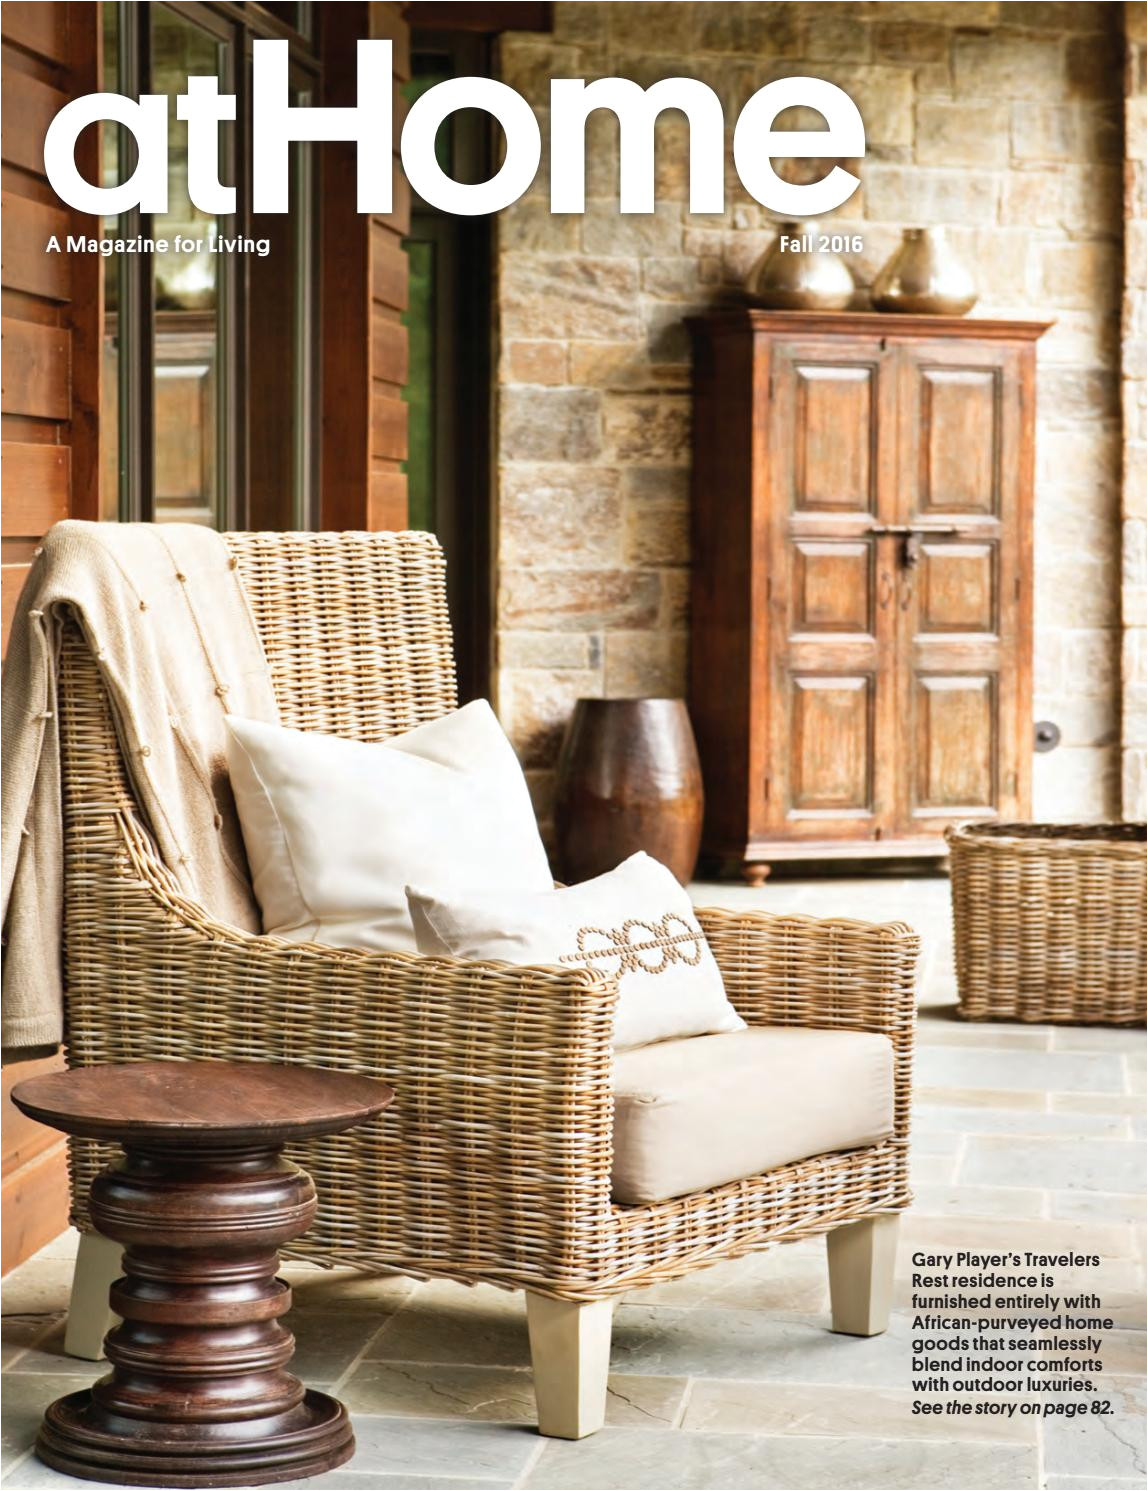 Casual Living Fireplace Store Greenville Sc at Home Fall 2016 by Community Journals issuu